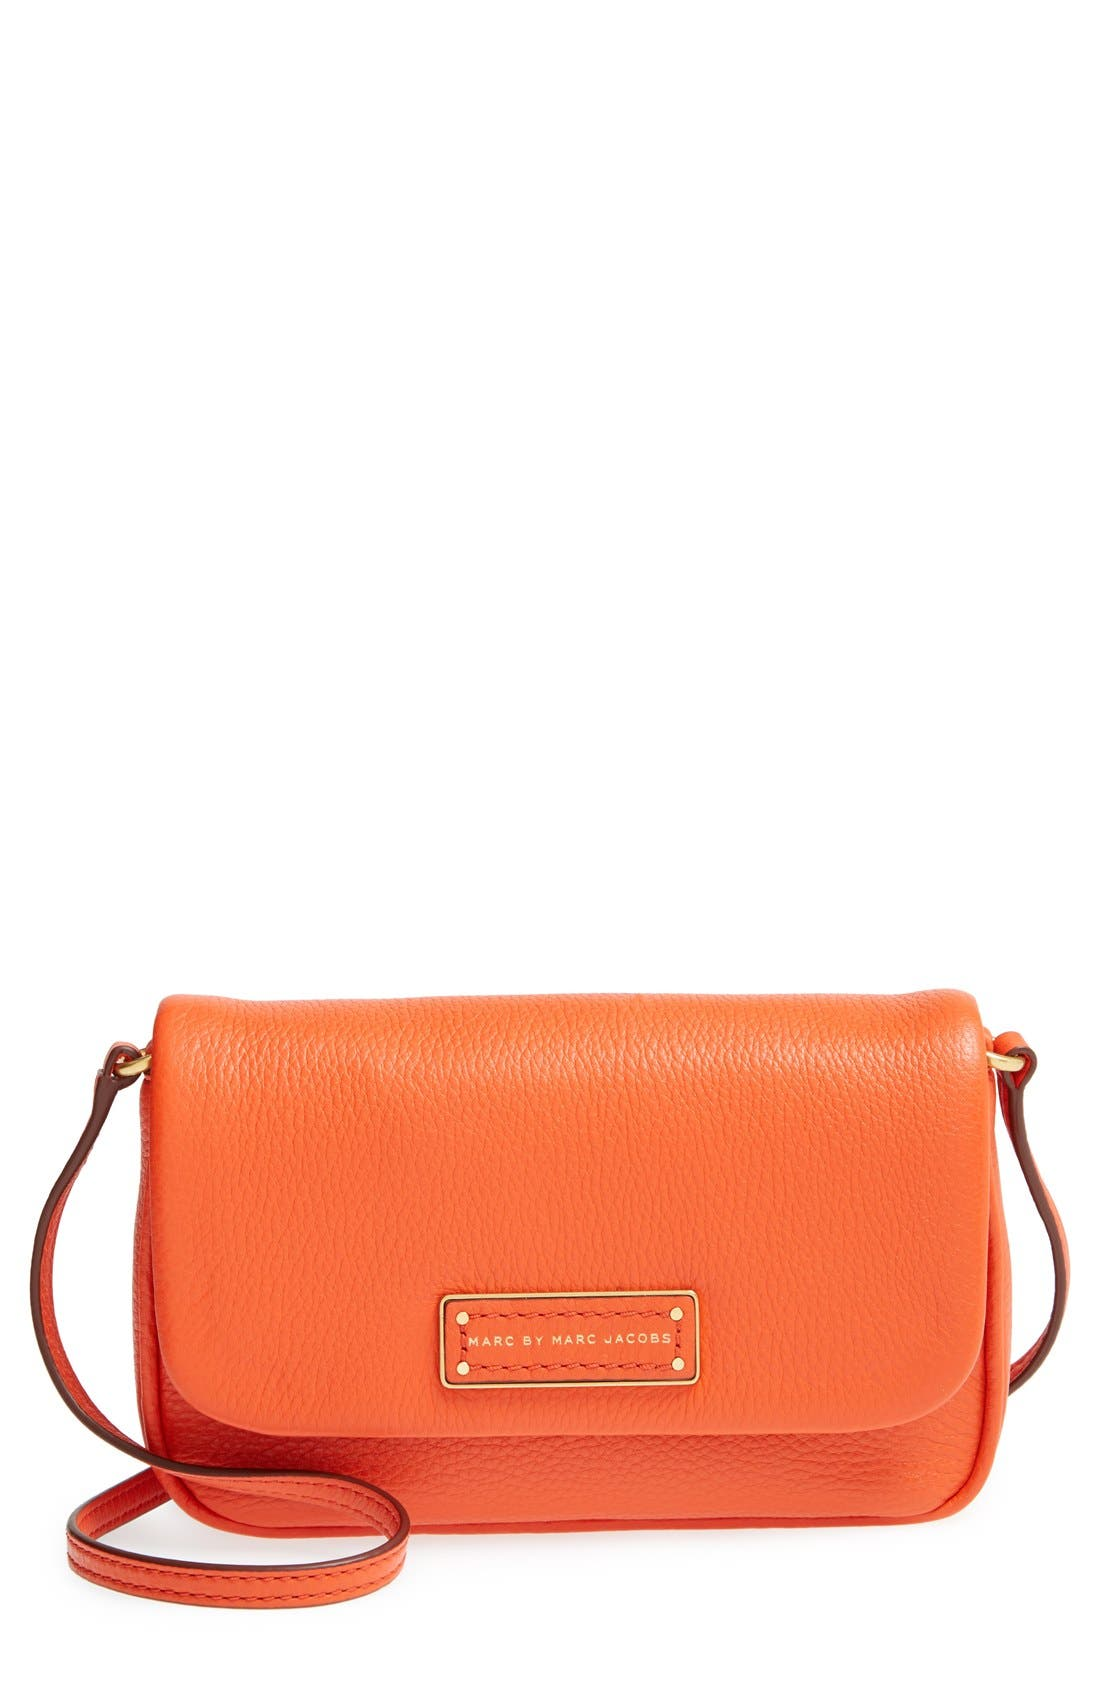 Main Image - MARC BY MARC JACOBS 'Too Hot to Handle - Sofia' Crossbody Bag